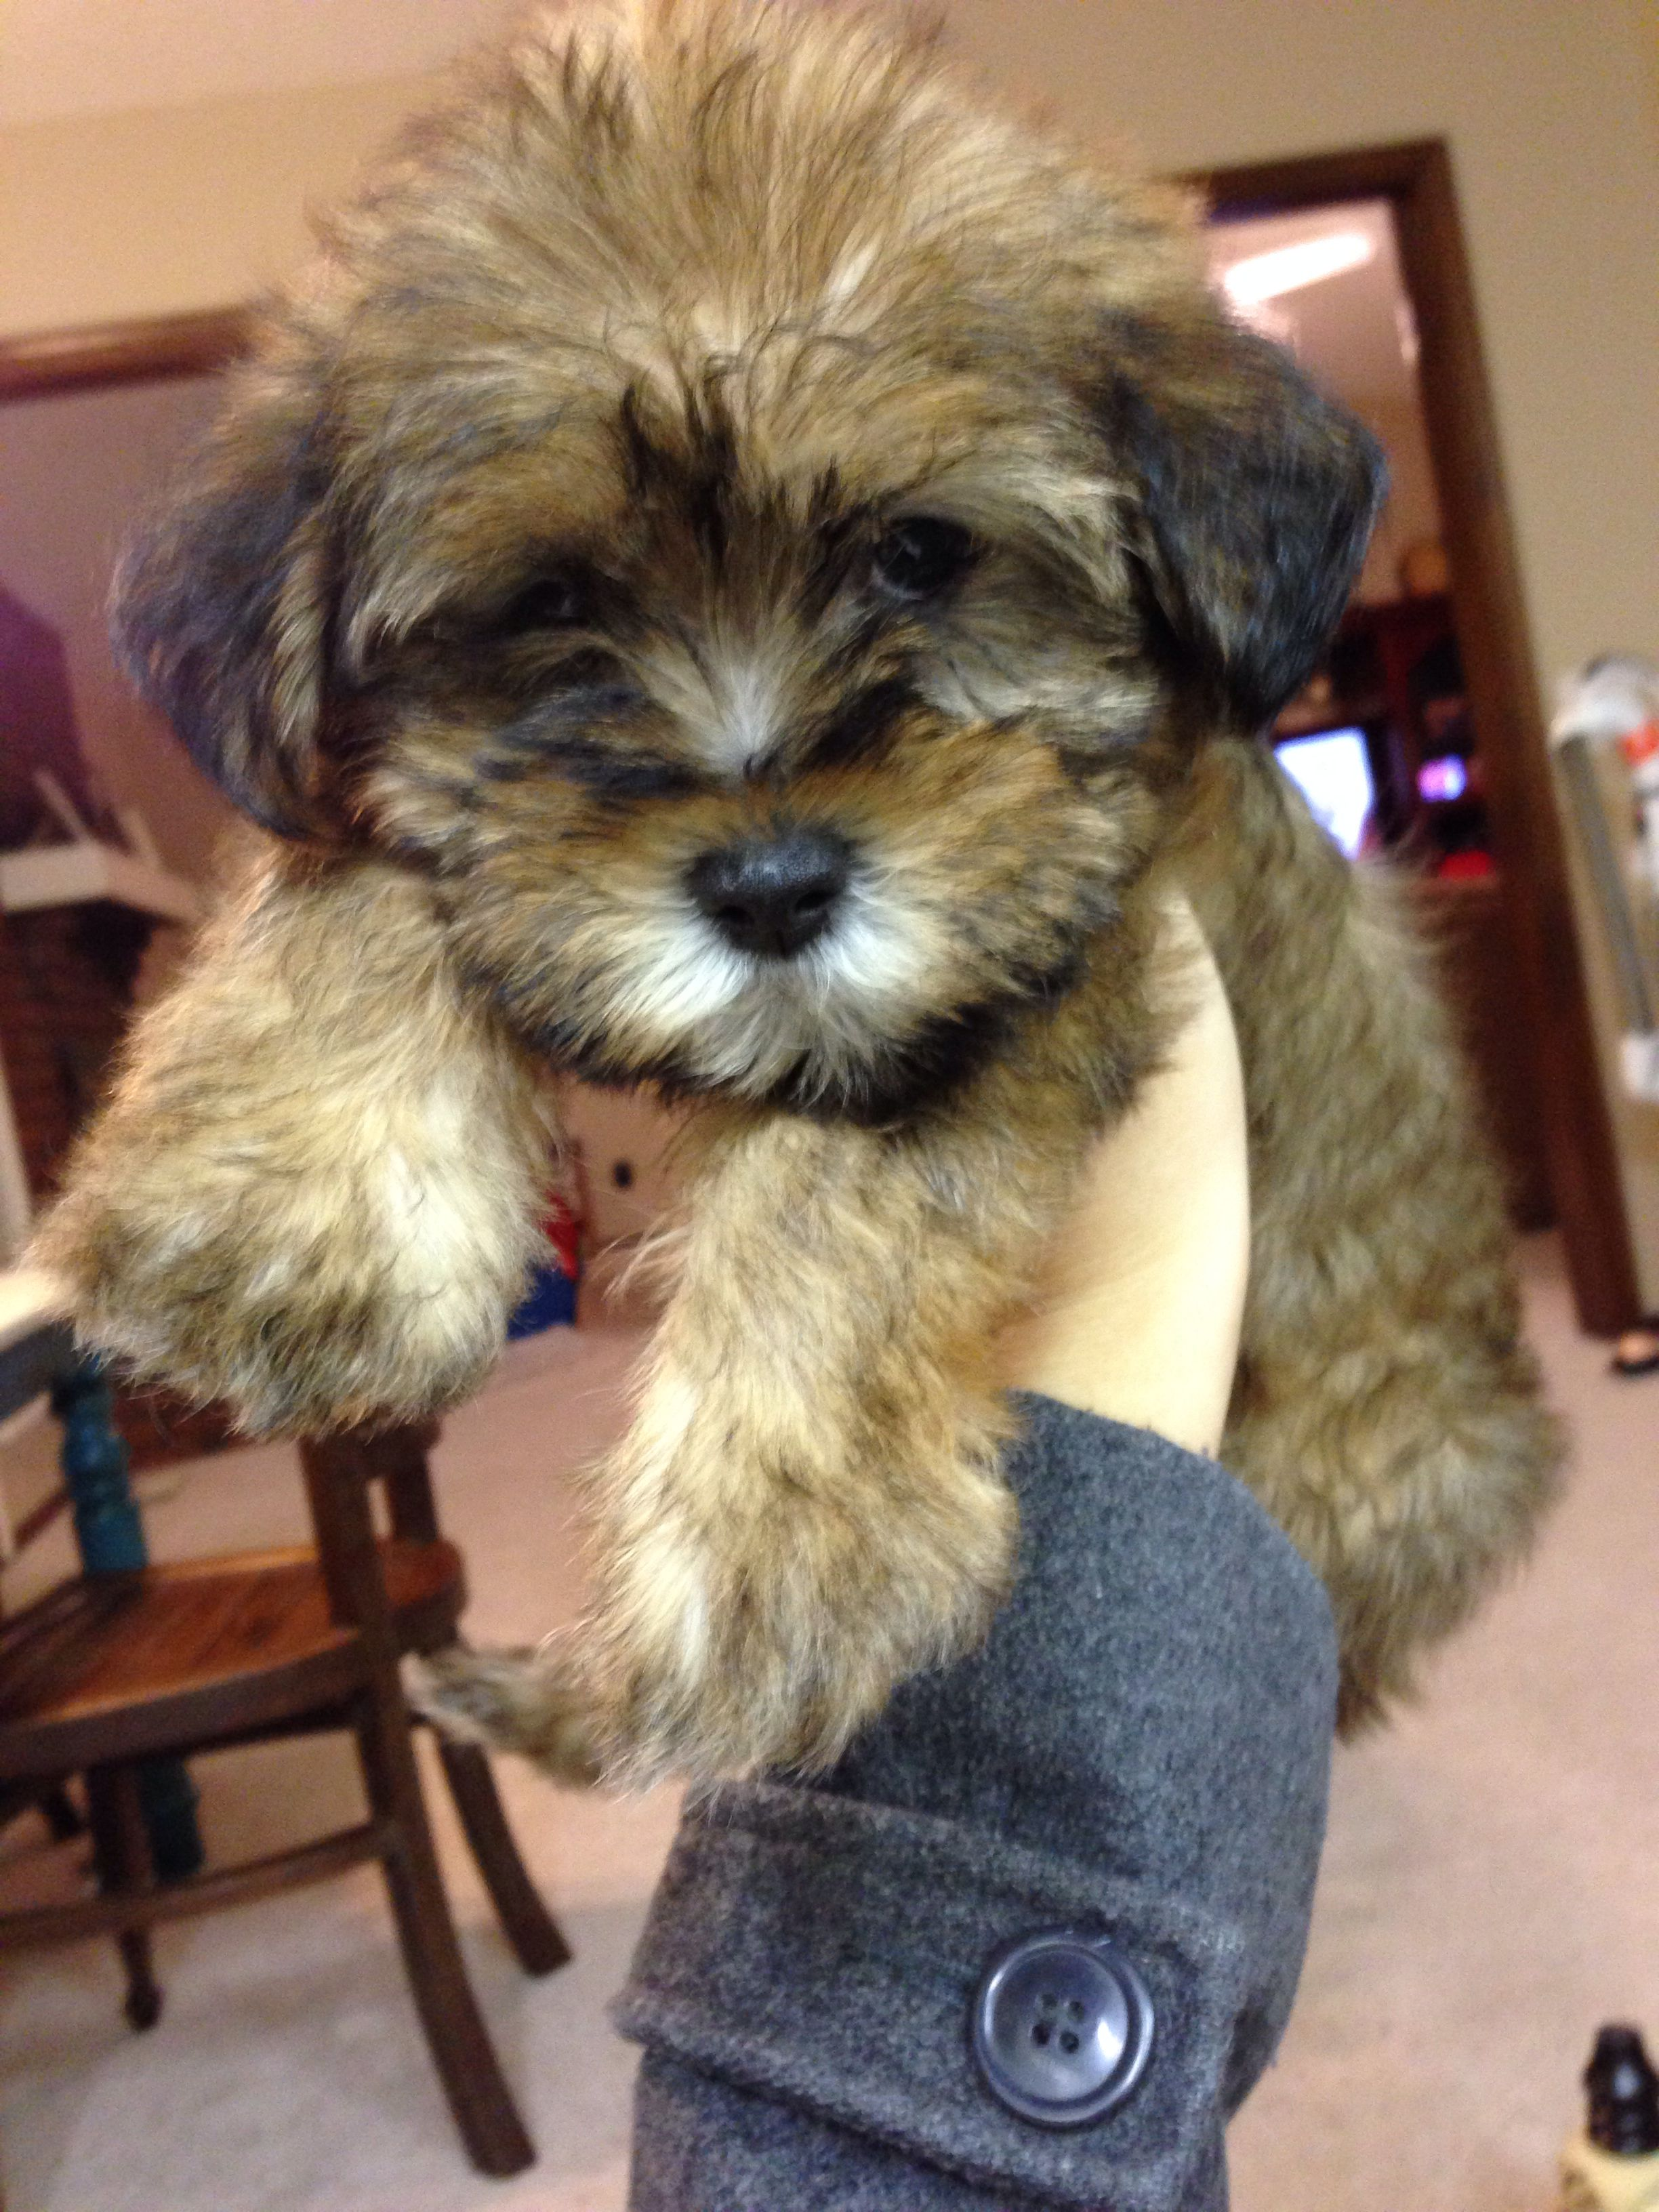 Shih Tzu Schnauzer Mix Teddy Bear Puppy Shih Tzu Cute Dogs Teddy Bear Puppies